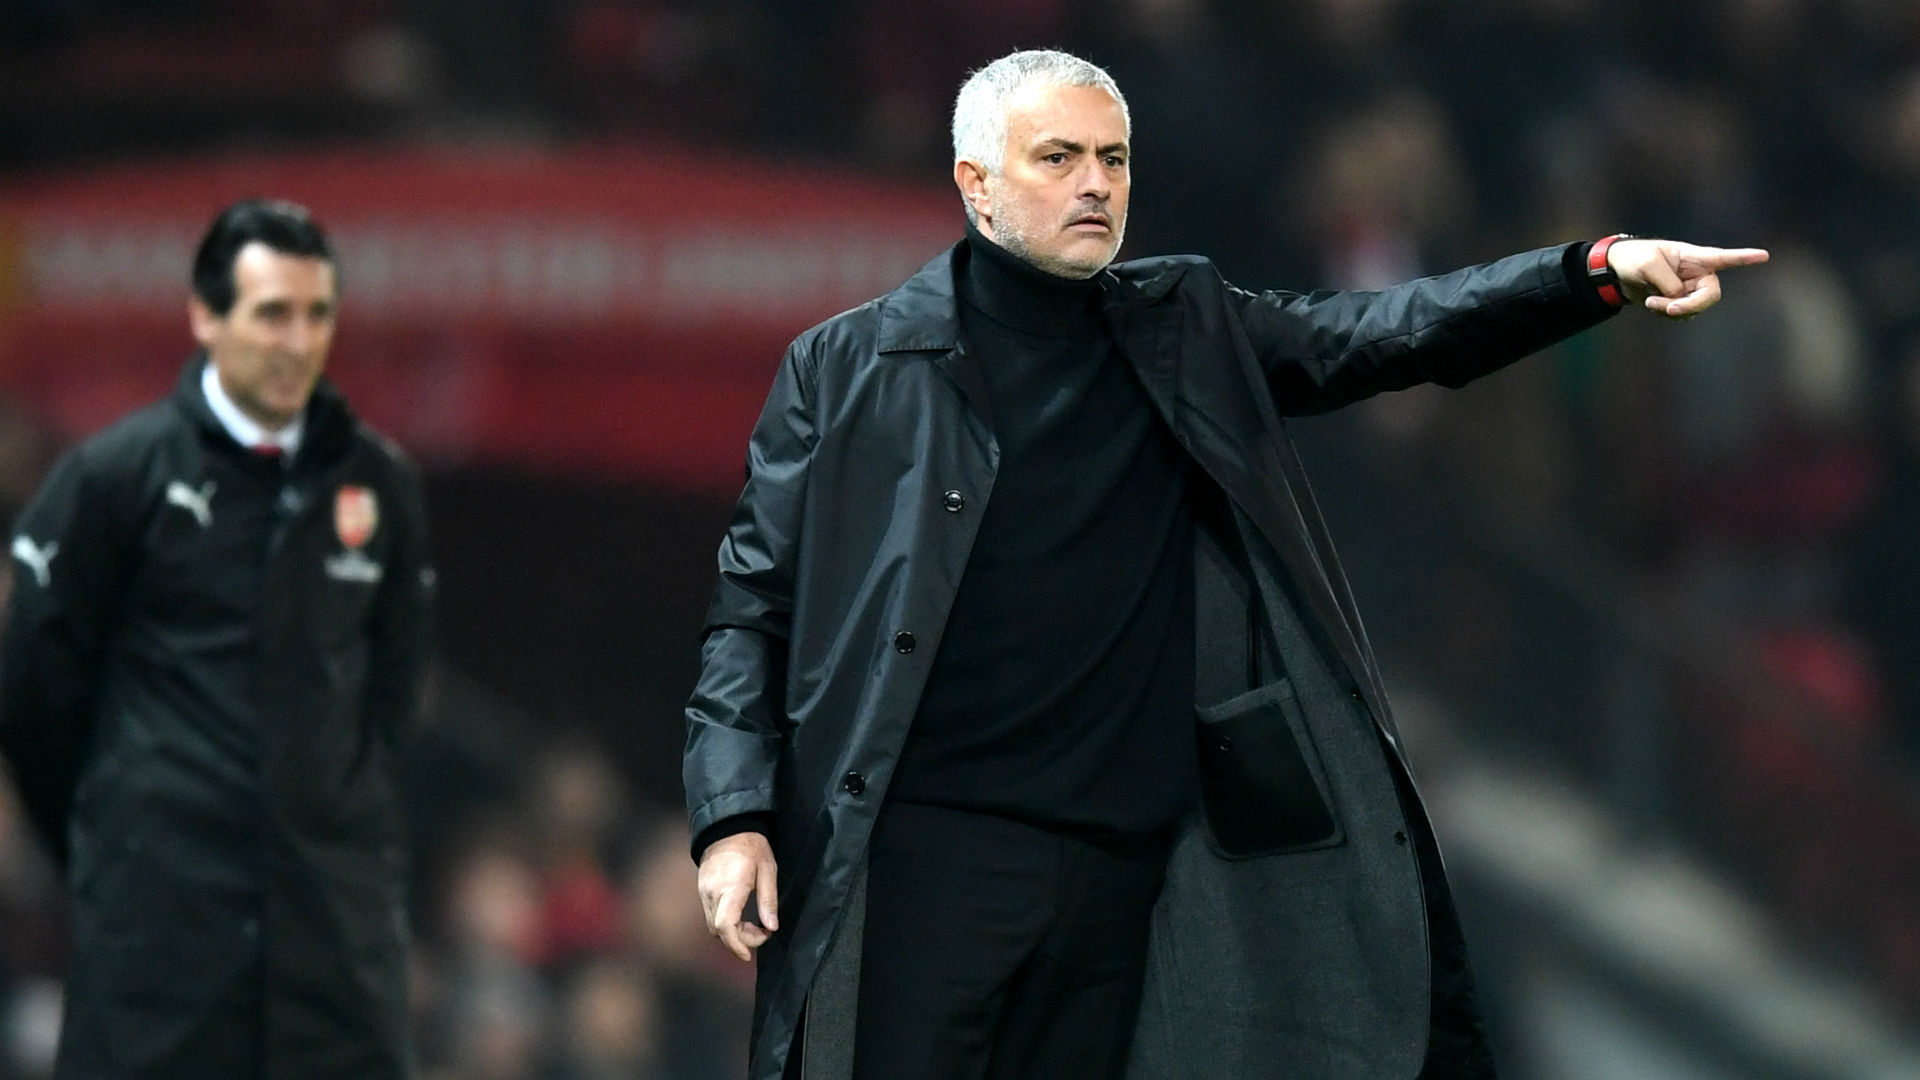 Jose Mourinho Manchester United Arsenal Premier League 05122018